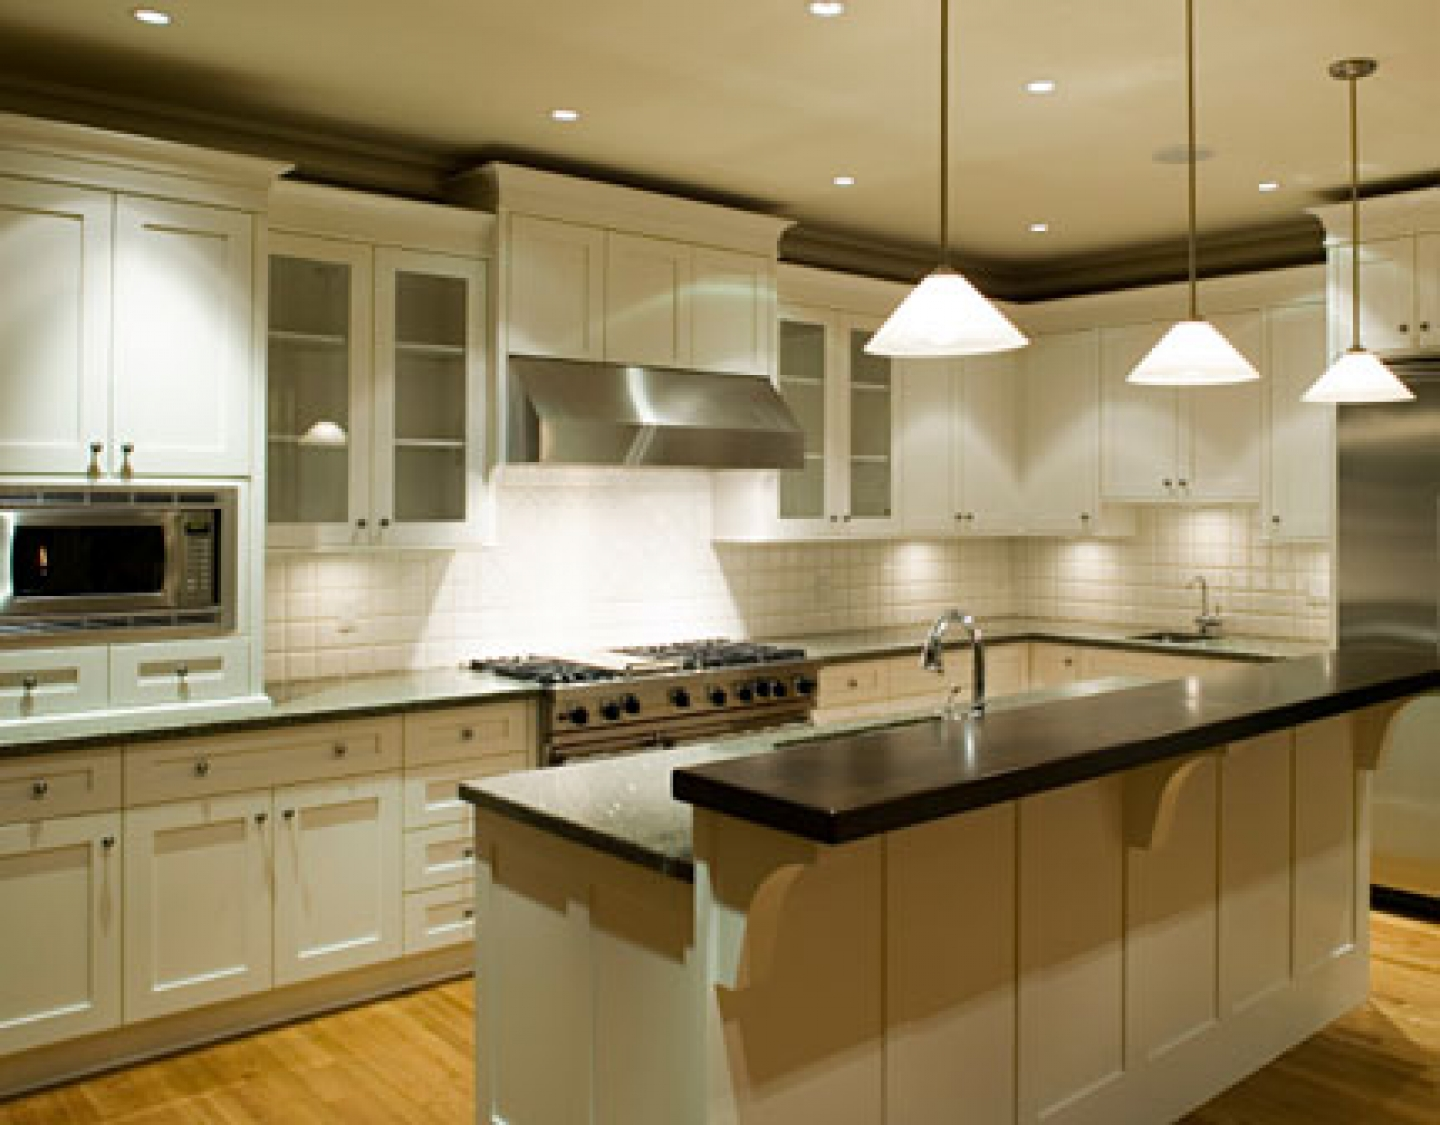 white kitchen cabinets stylize your house cabinets direct. Black Bedroom Furniture Sets. Home Design Ideas